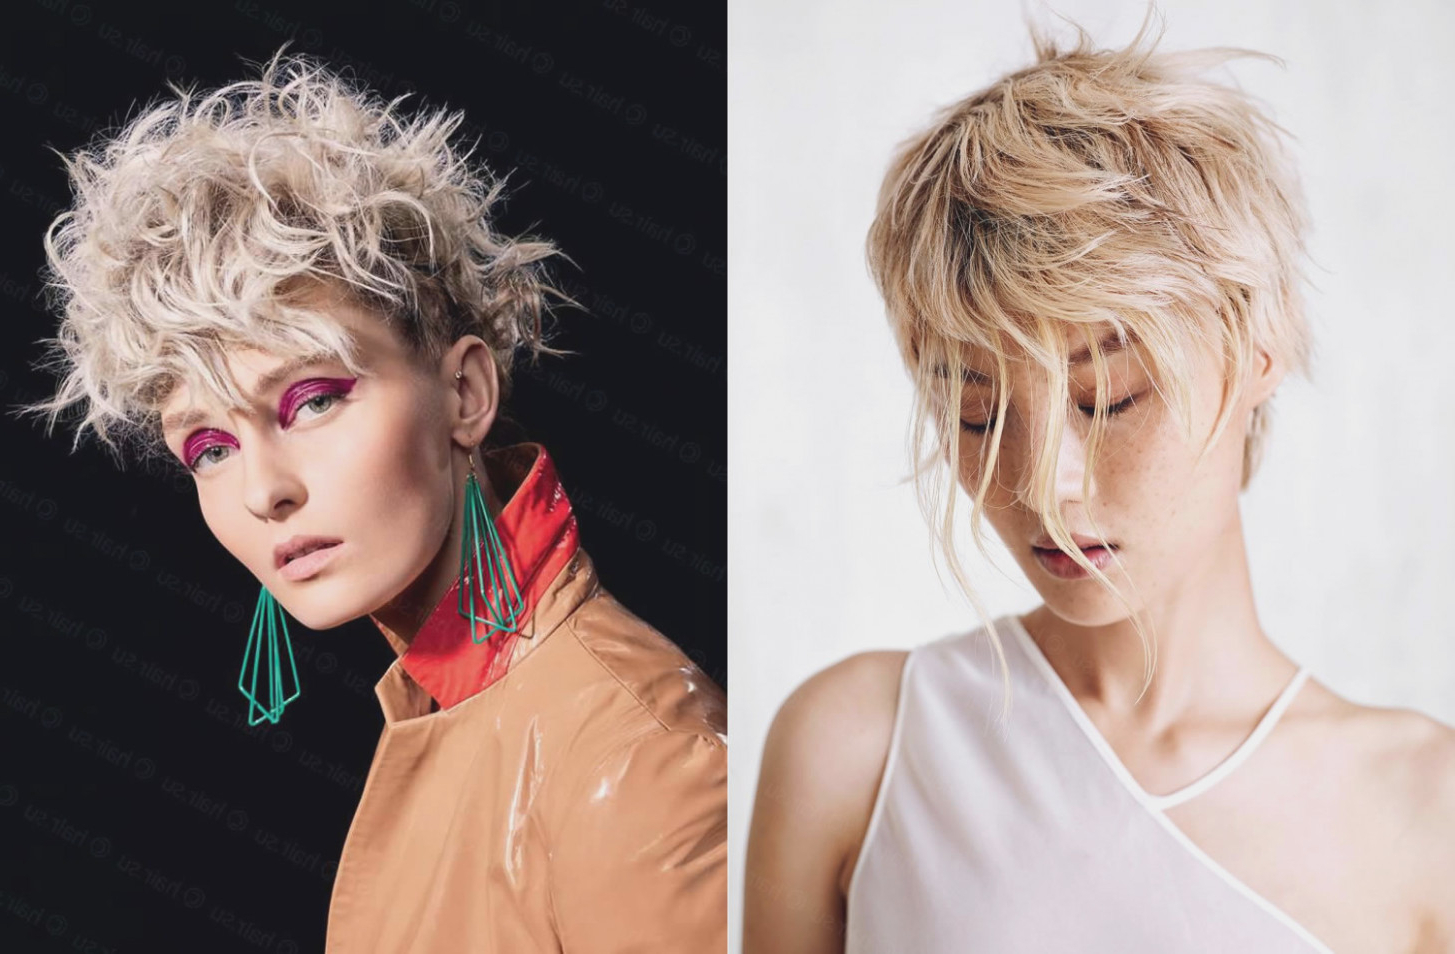 Messy Short Hairstyles For 44 44 – Hairstyles – Messy Hairstyles For Messy Short Haircuts For Women (View 18 of 25)